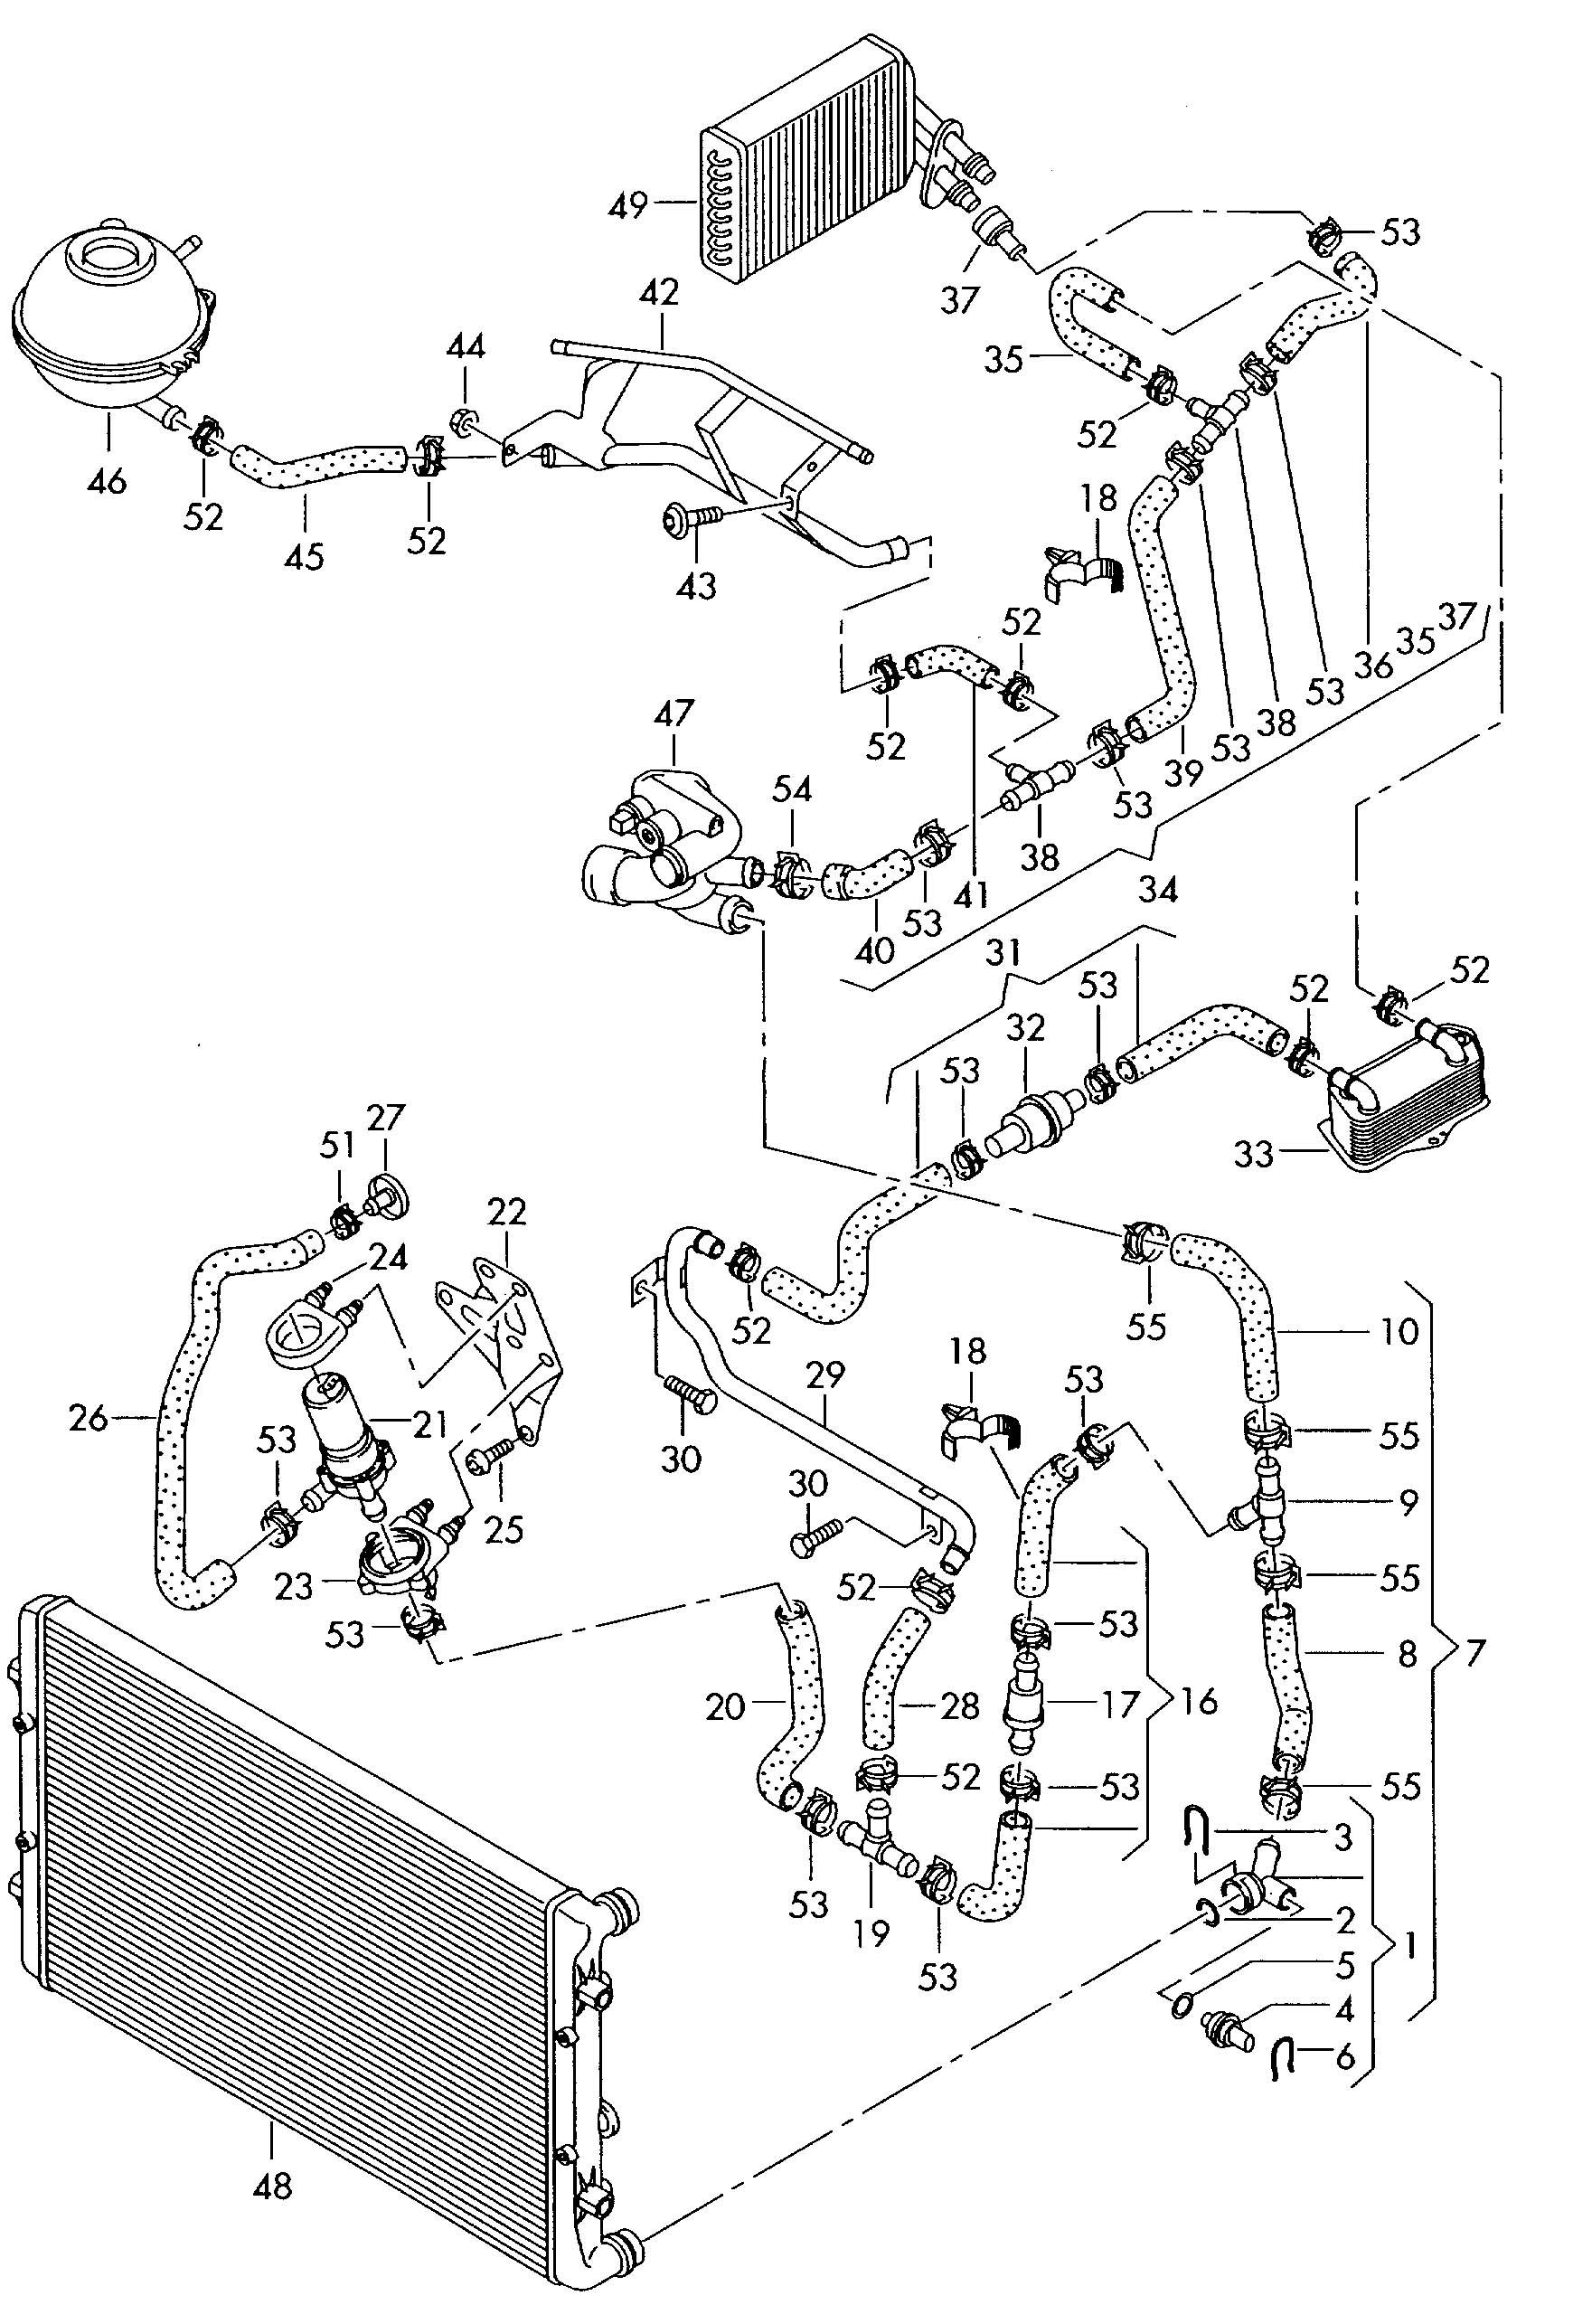 audi a3 engine diagram wiring diagram progresif2006 audi a3 wiring diagram wiring diagram data vw passat wagon engine diagram audi a3 engine diagram